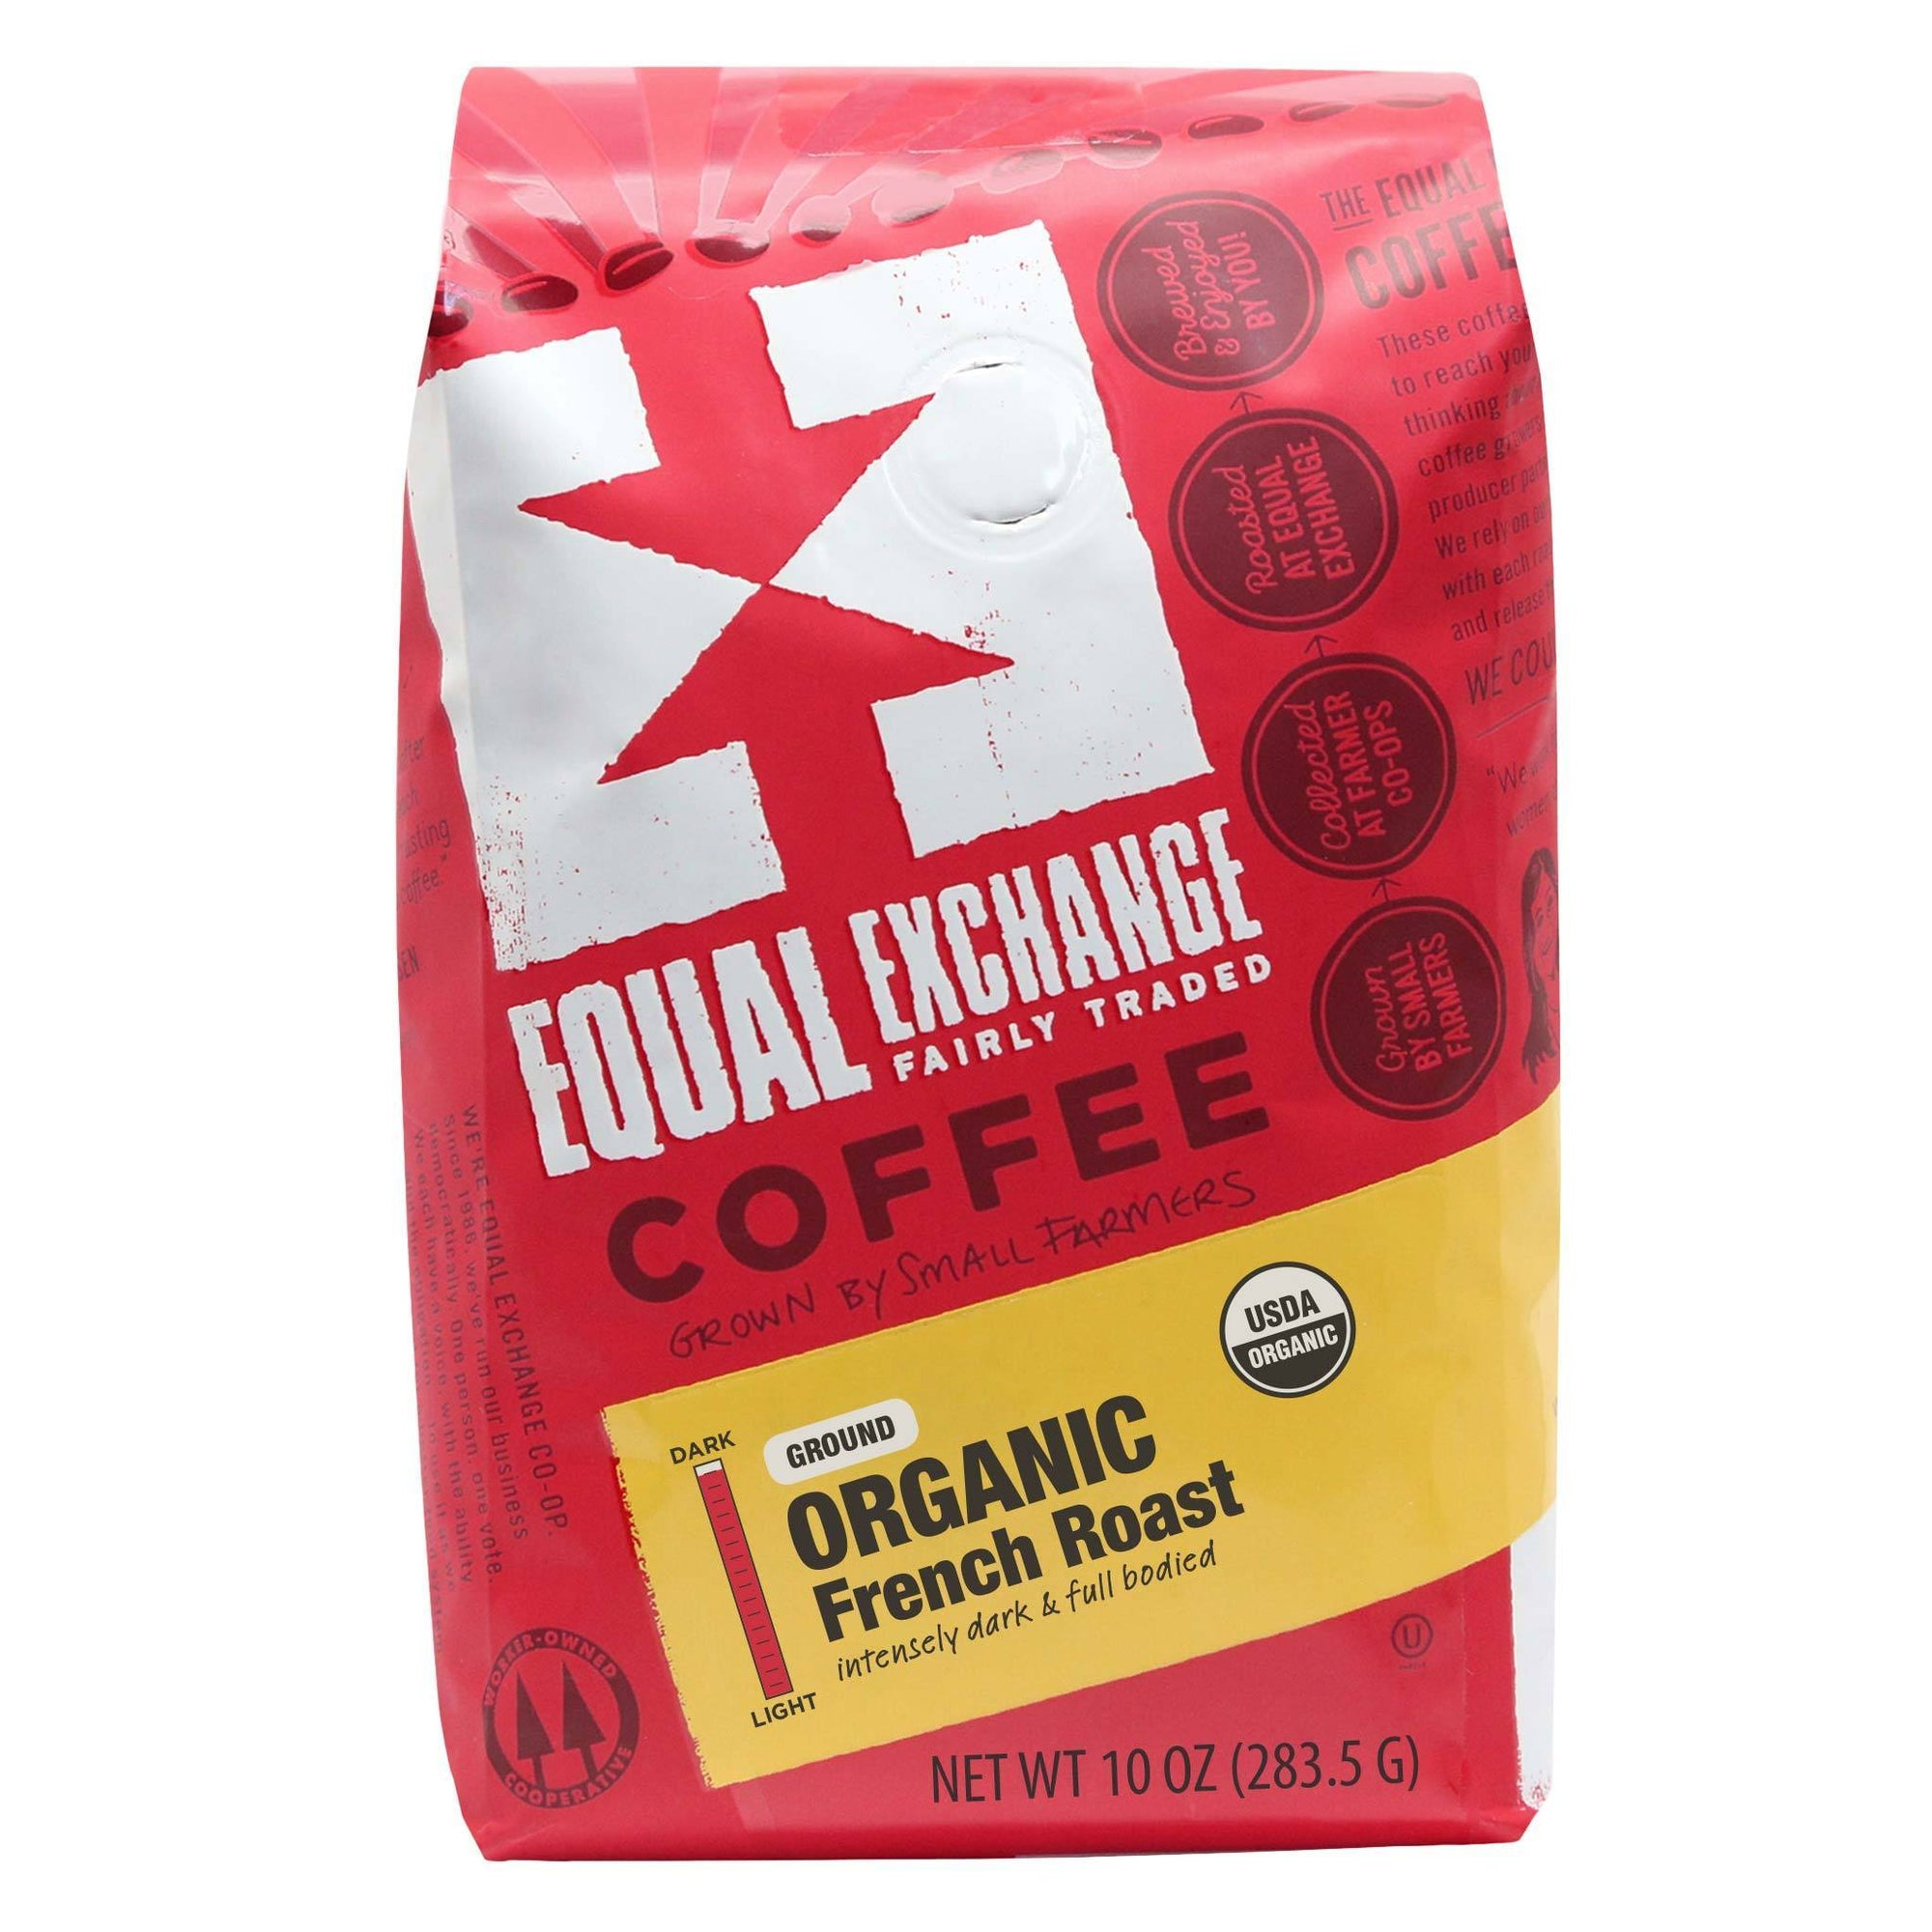 Food & Drink - Equal Exchange - Organic French Roast - Ground, 284g